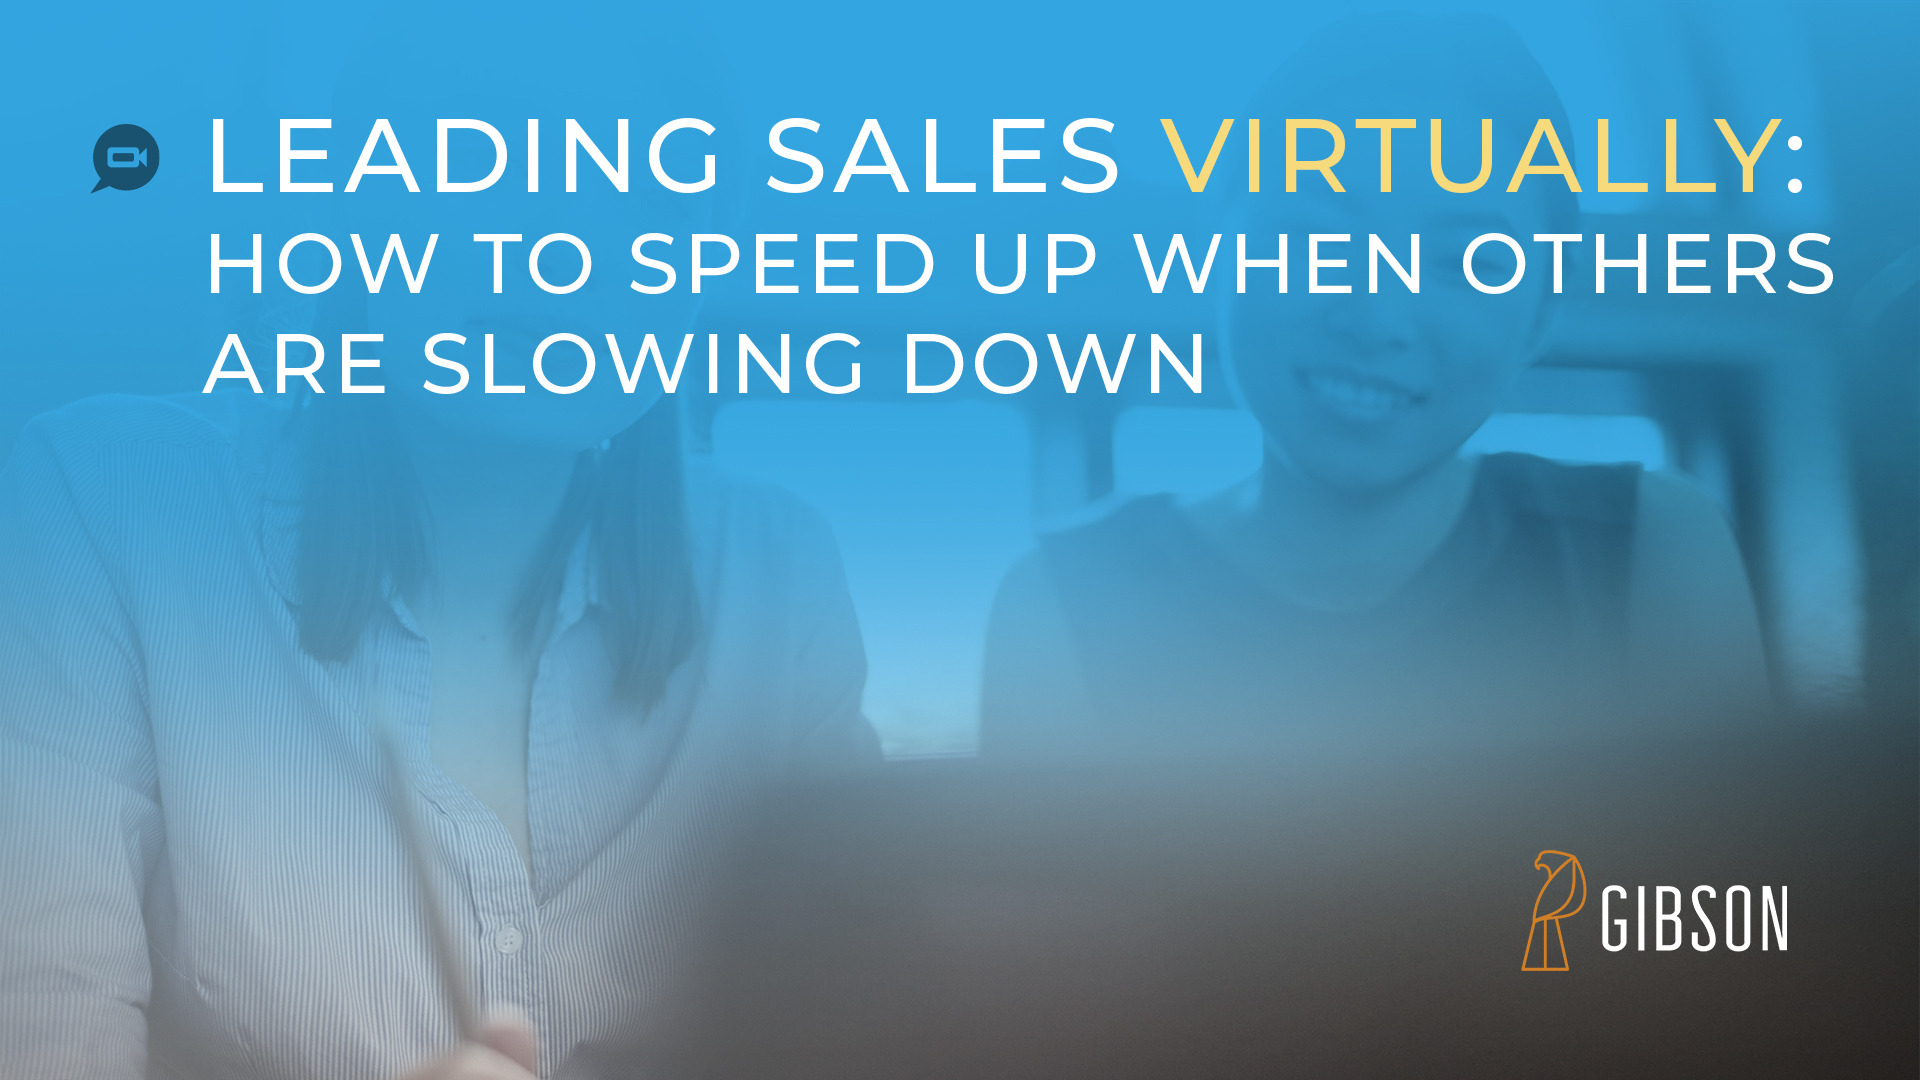 Leading Sales Virtually - How to Speed Up When Others Are Slowing Down